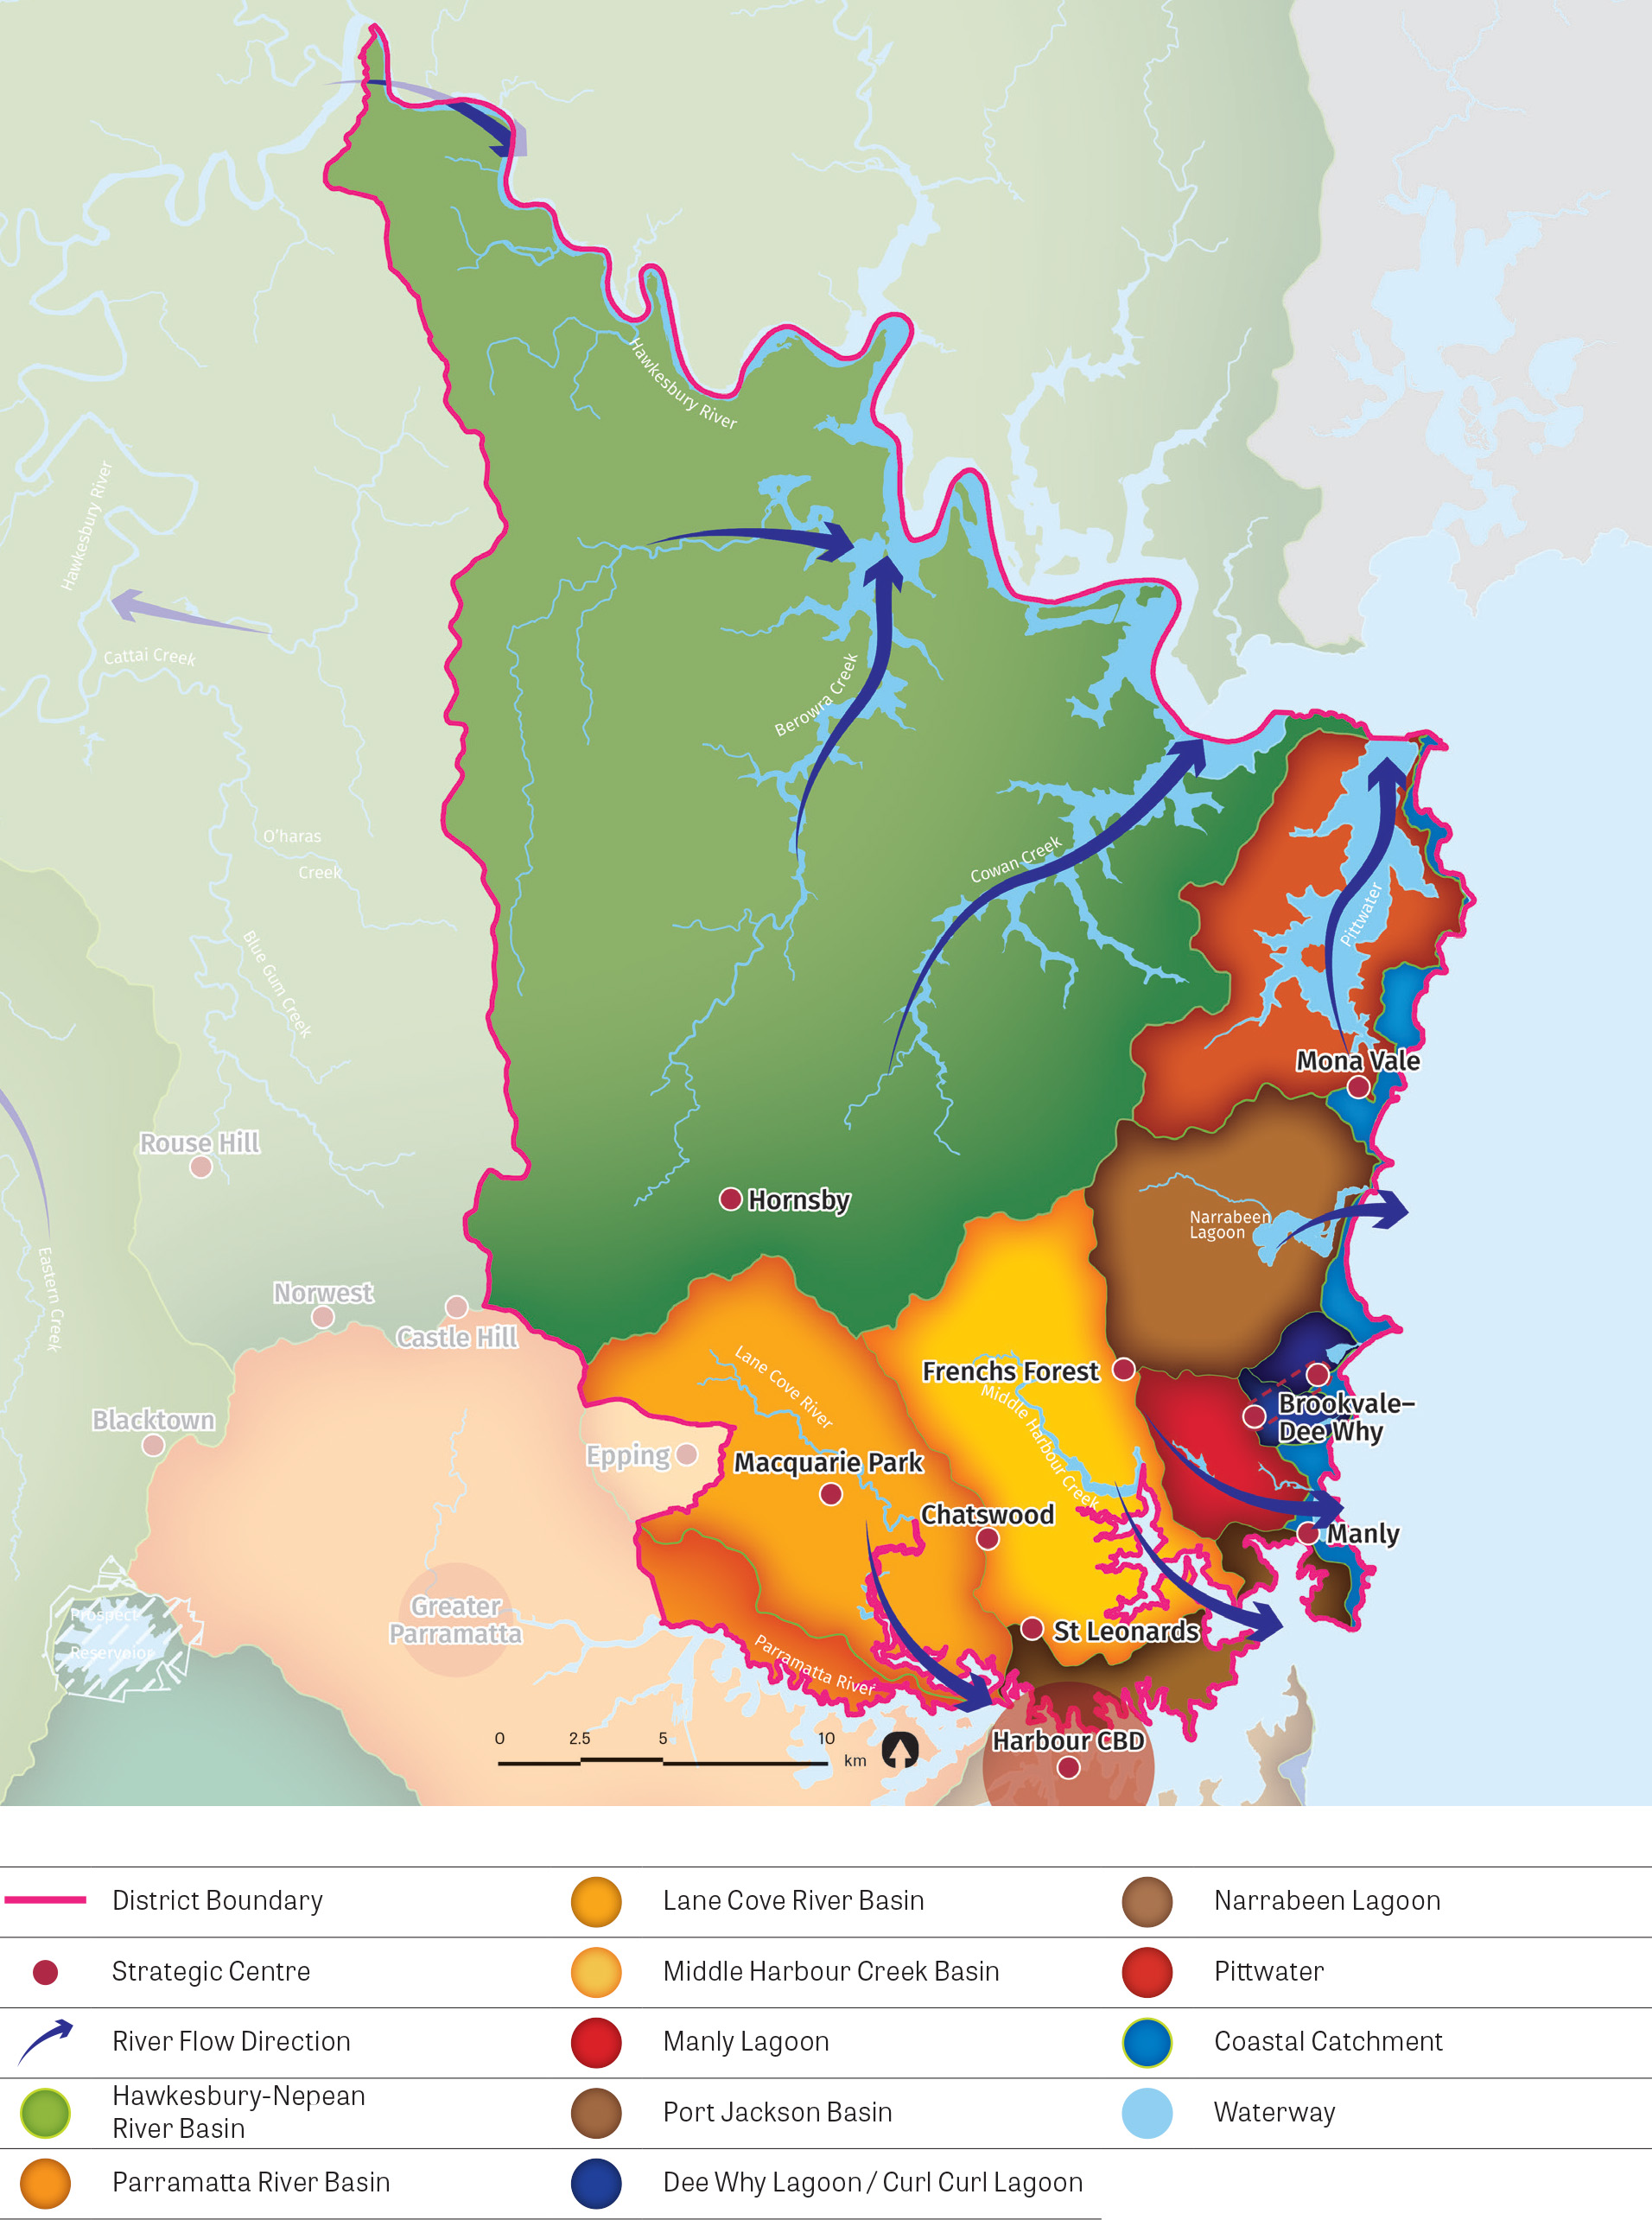 A stylised map of the district showing the river catchments and waterways river flow direction, the coastal catchment as well as District boundary and strategic centres.